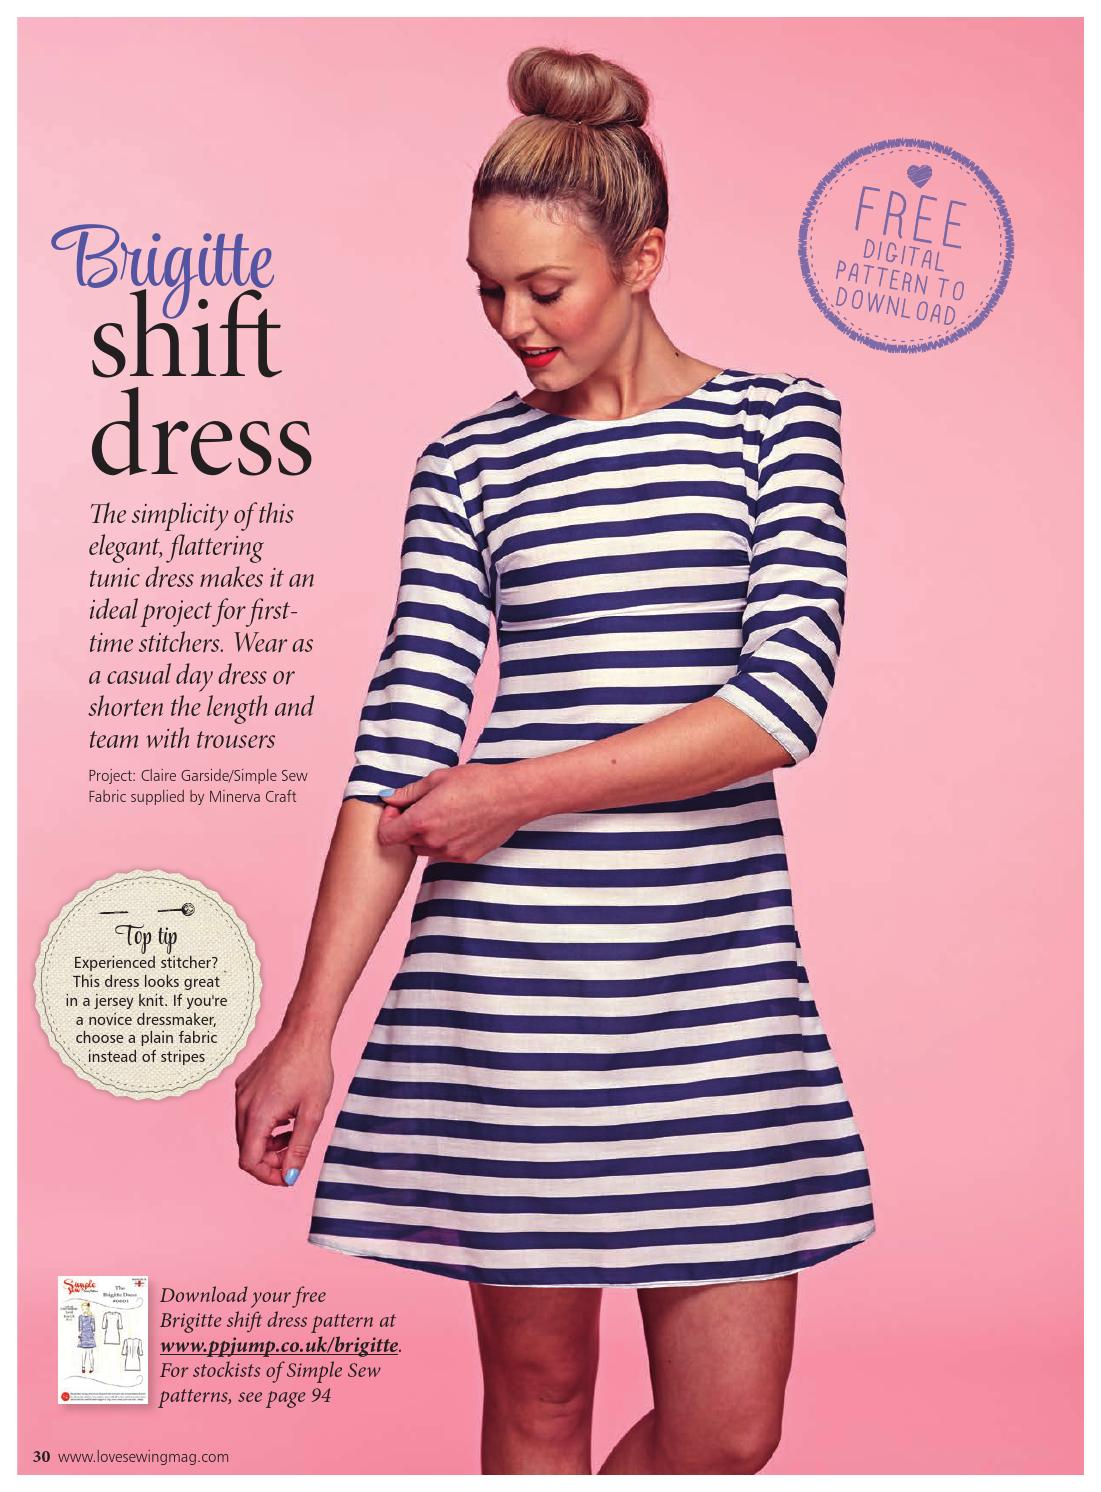 Simple Knit Dress Pattern Love Sewing 1 New Sampler Practical Publishing Issuu